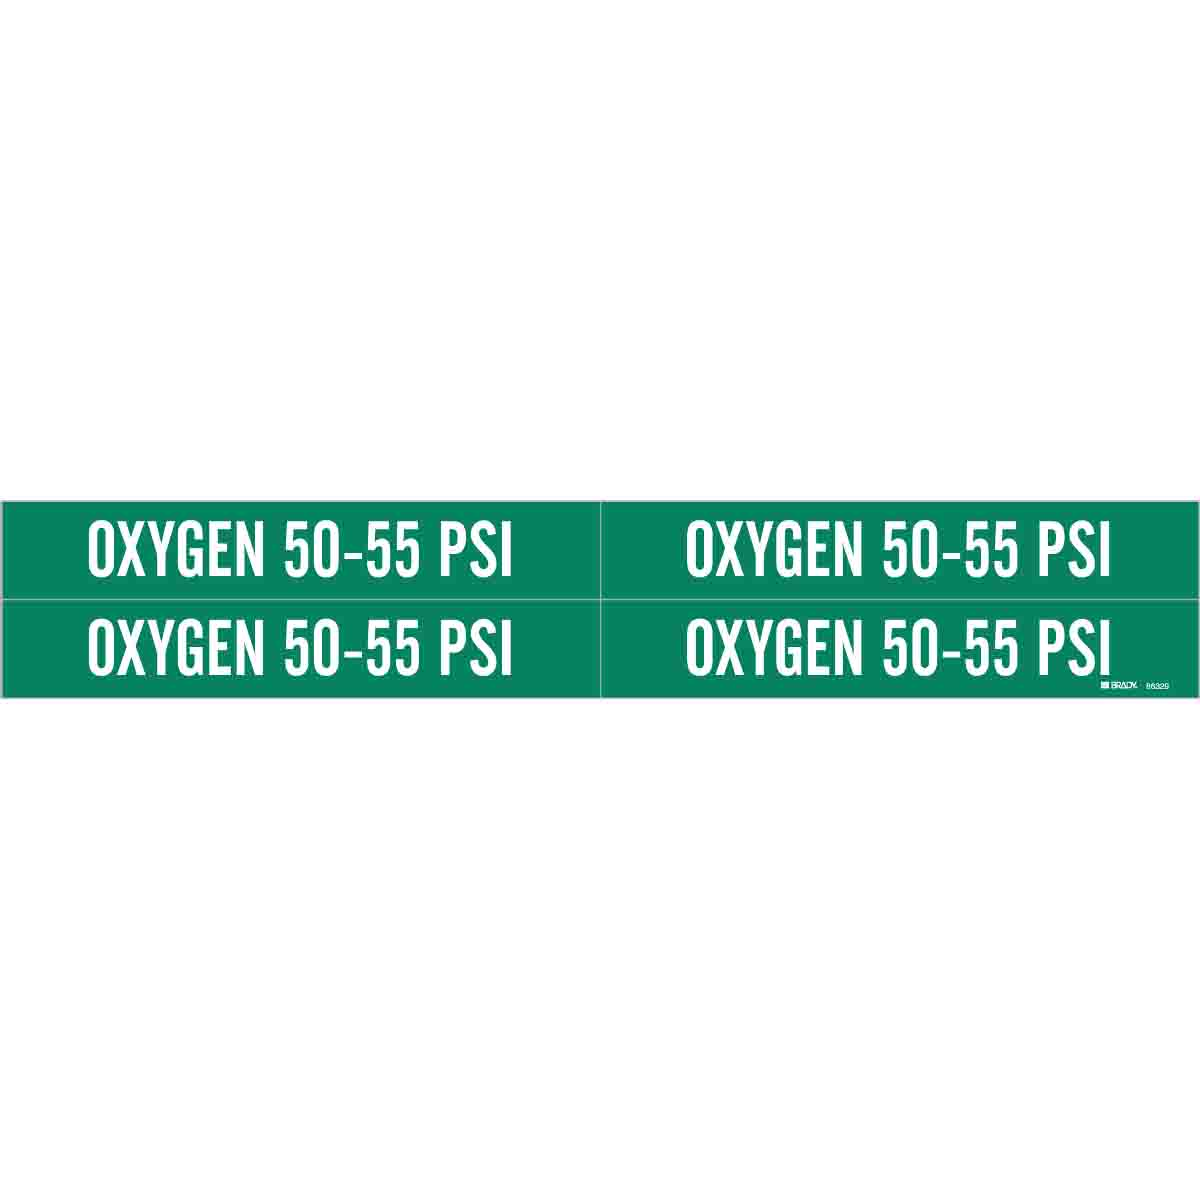 Brady® 86329 4 Style Pipe Marker, OXYGEN 50-55 PSI Legend, White on Green, Fits Pipe Dia: 1 to 2-1/2 in, 1-1/8 in H x 7 in W, B-946 Vinyl, Self-Adhesive Mount